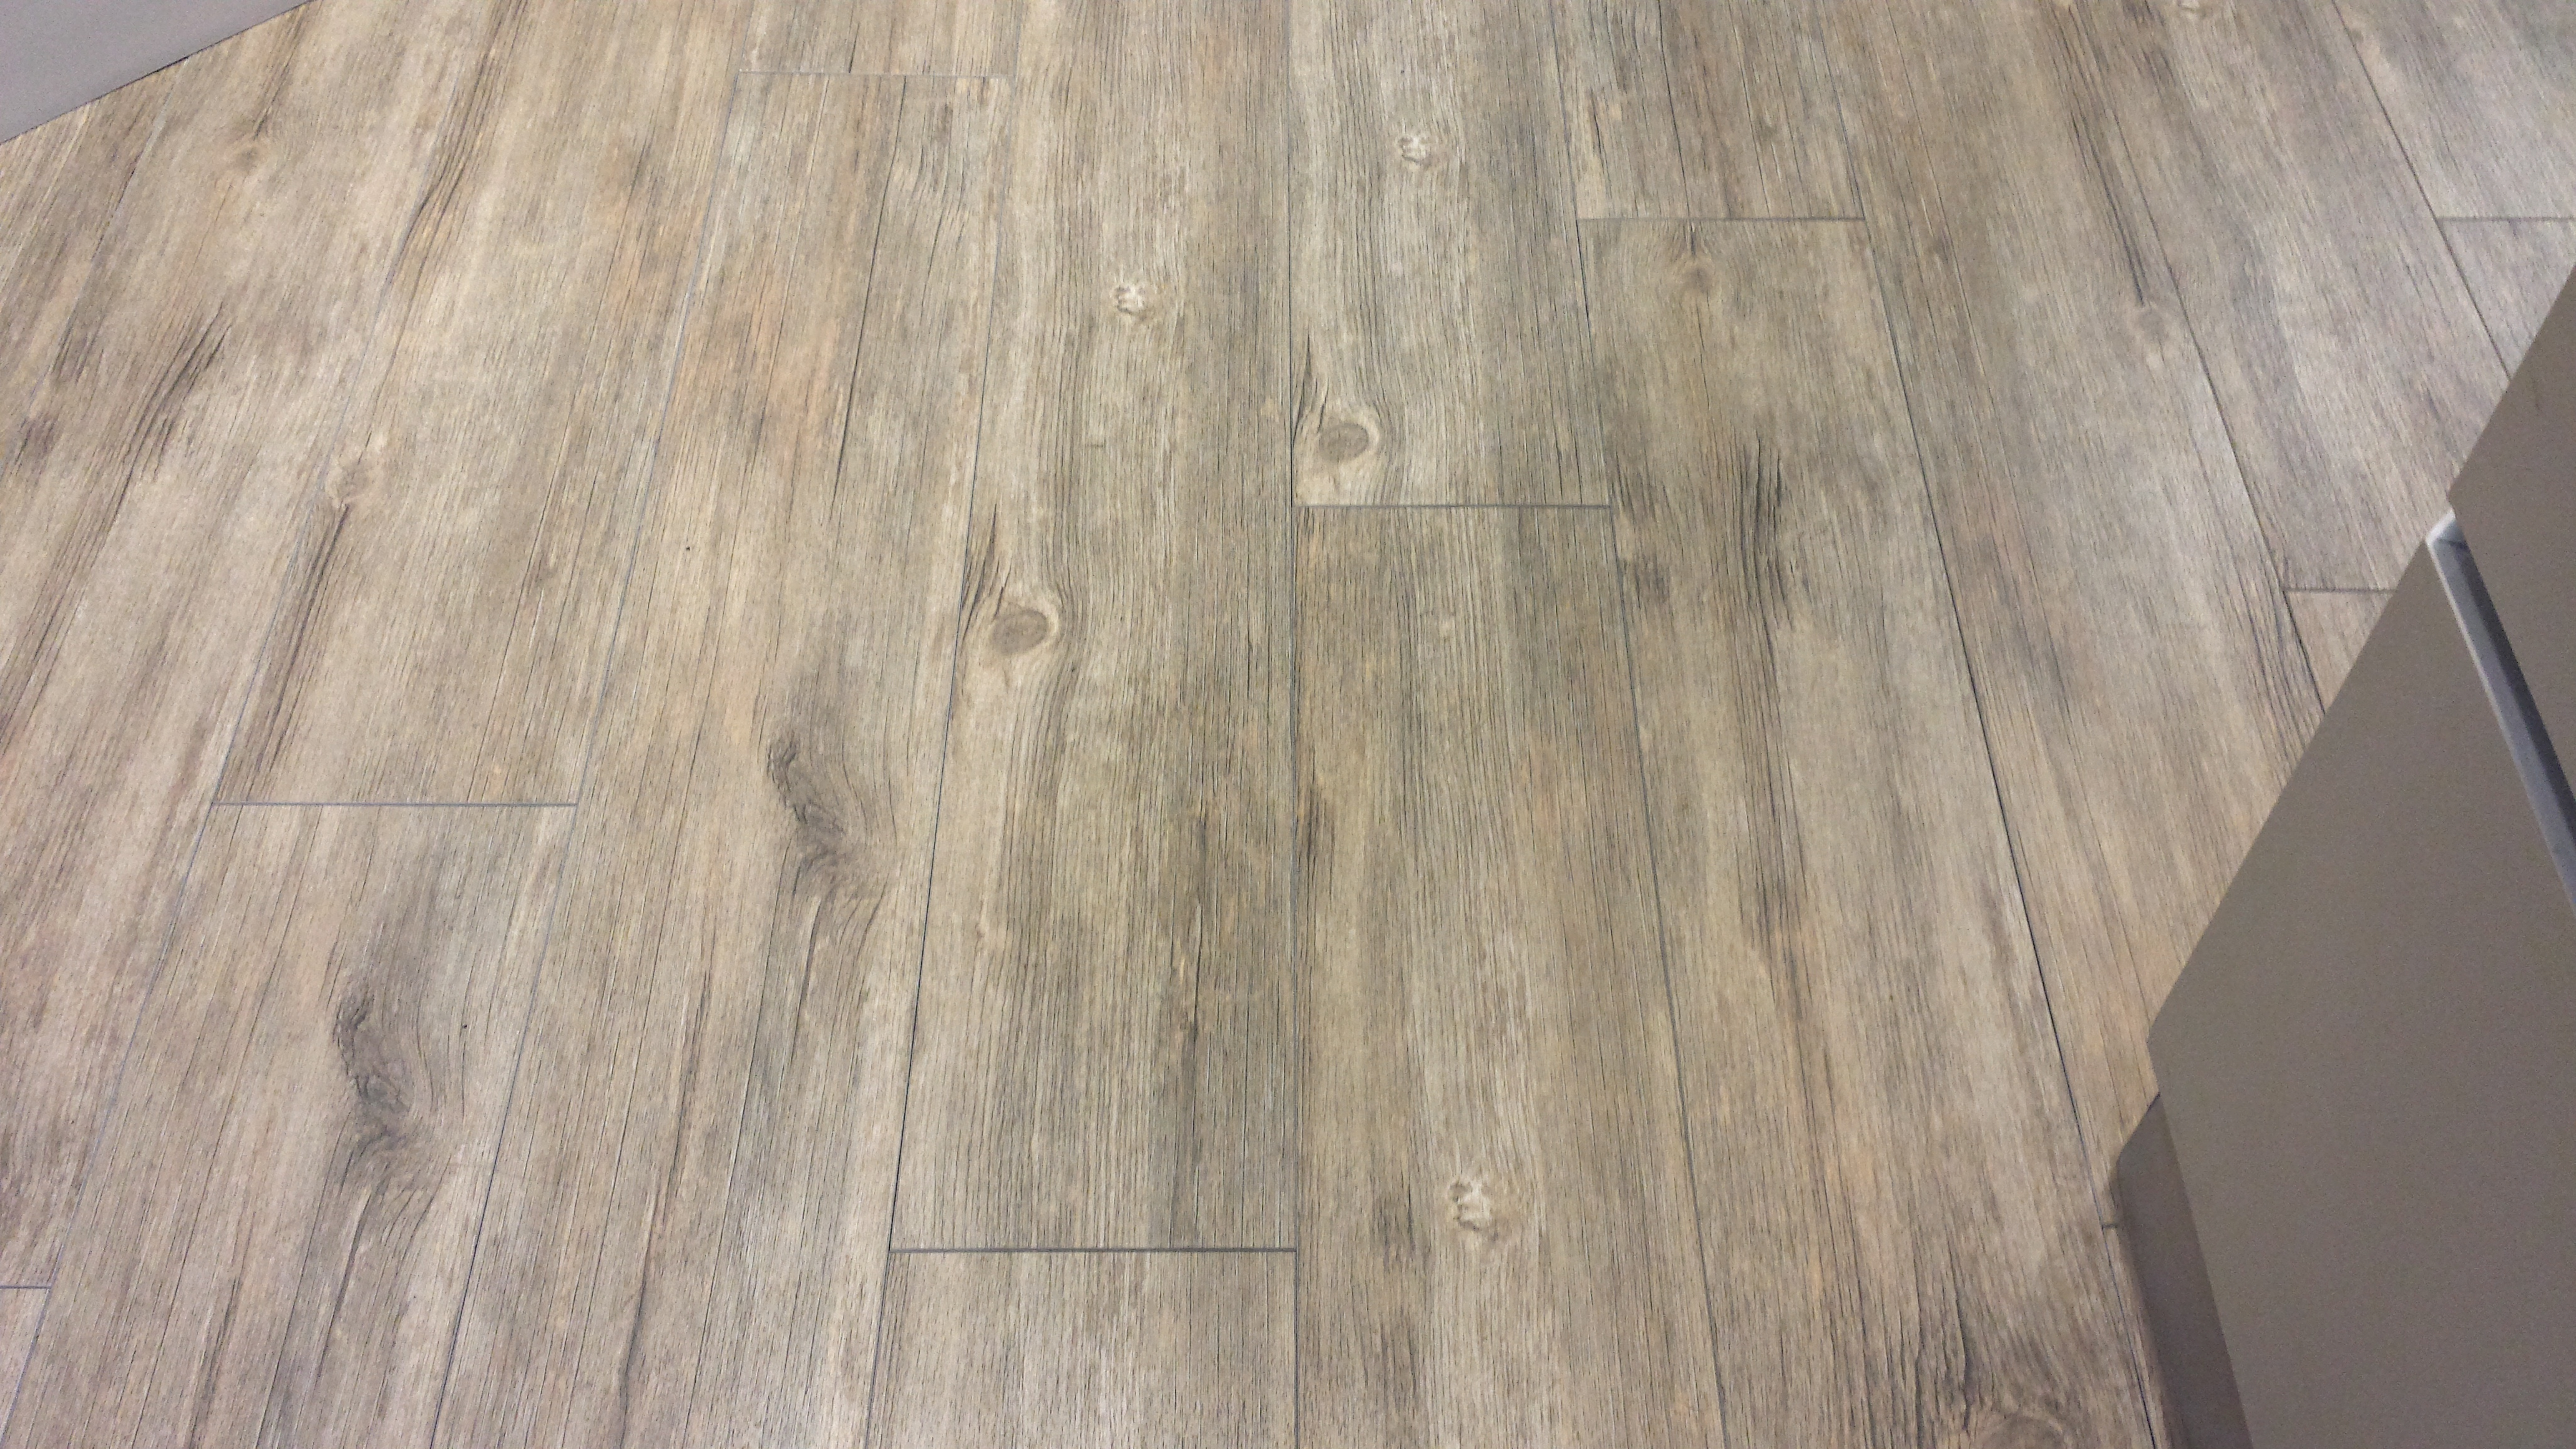 Wood Look Luxury Vinyl Tiles